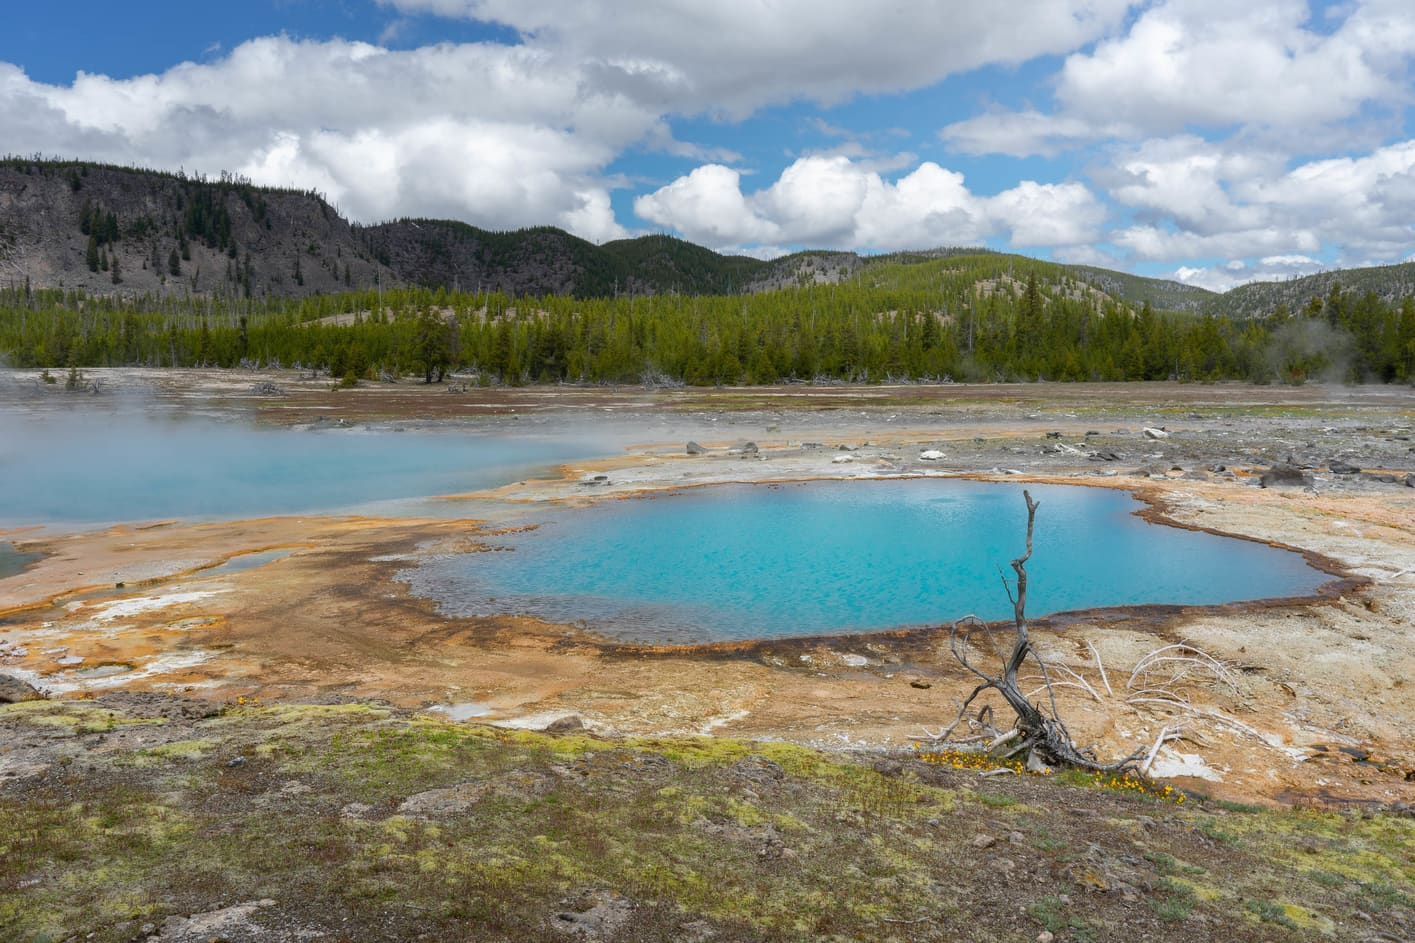 Biscuit Basin, what to do in Yellowstone to know the geothermal activity